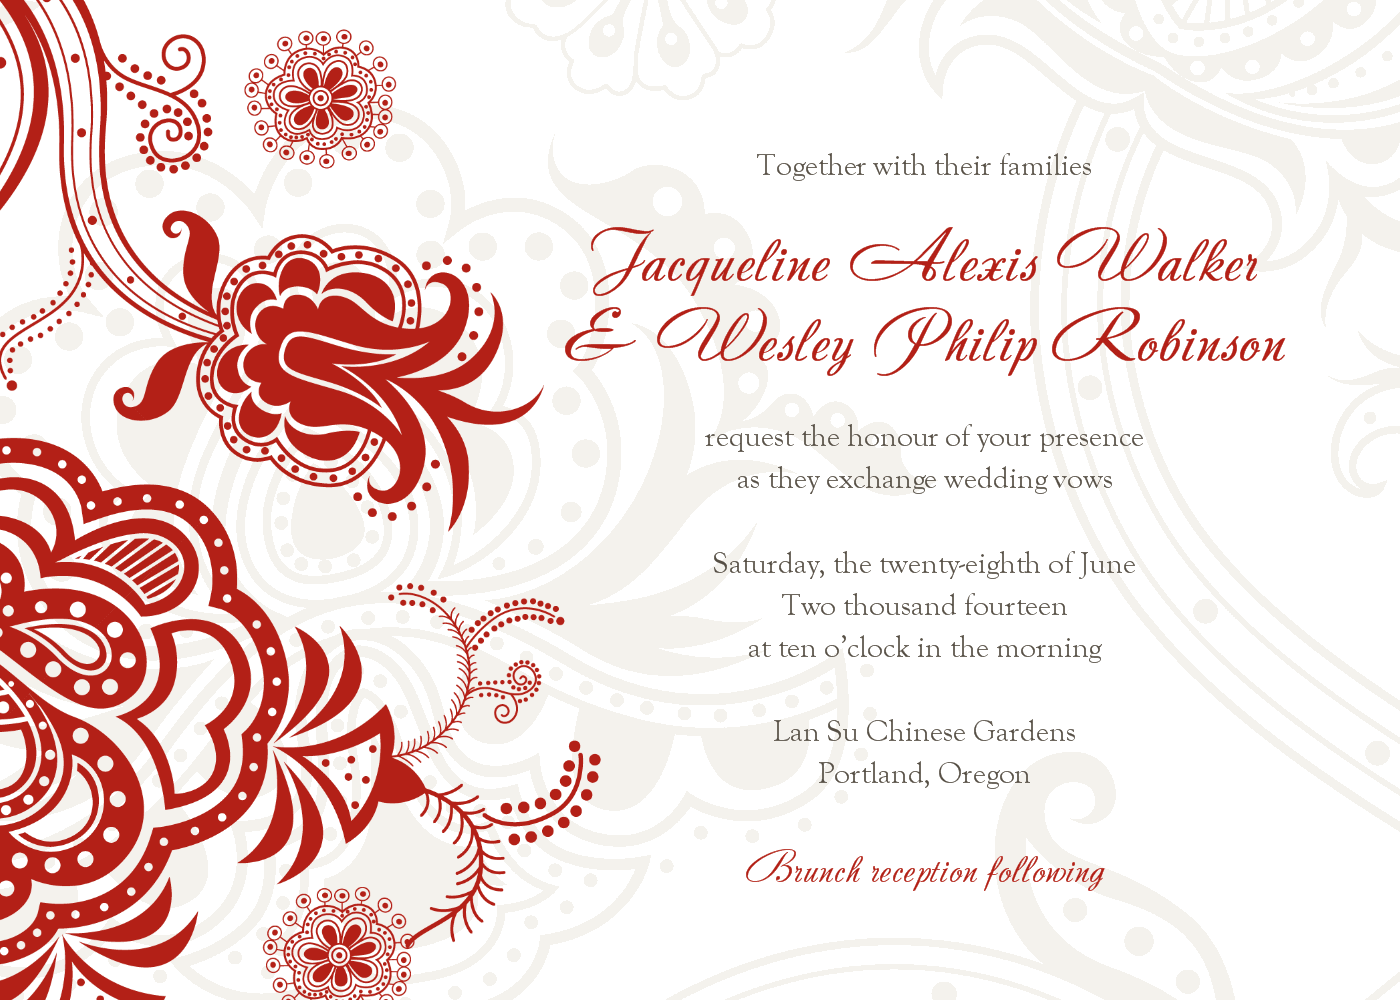 Marvelous Printable Wedding Invitations | Free Printable Wedding Invitation Cards Free  Download. Get This Nice . With Free Wedding Invitation Card Templates